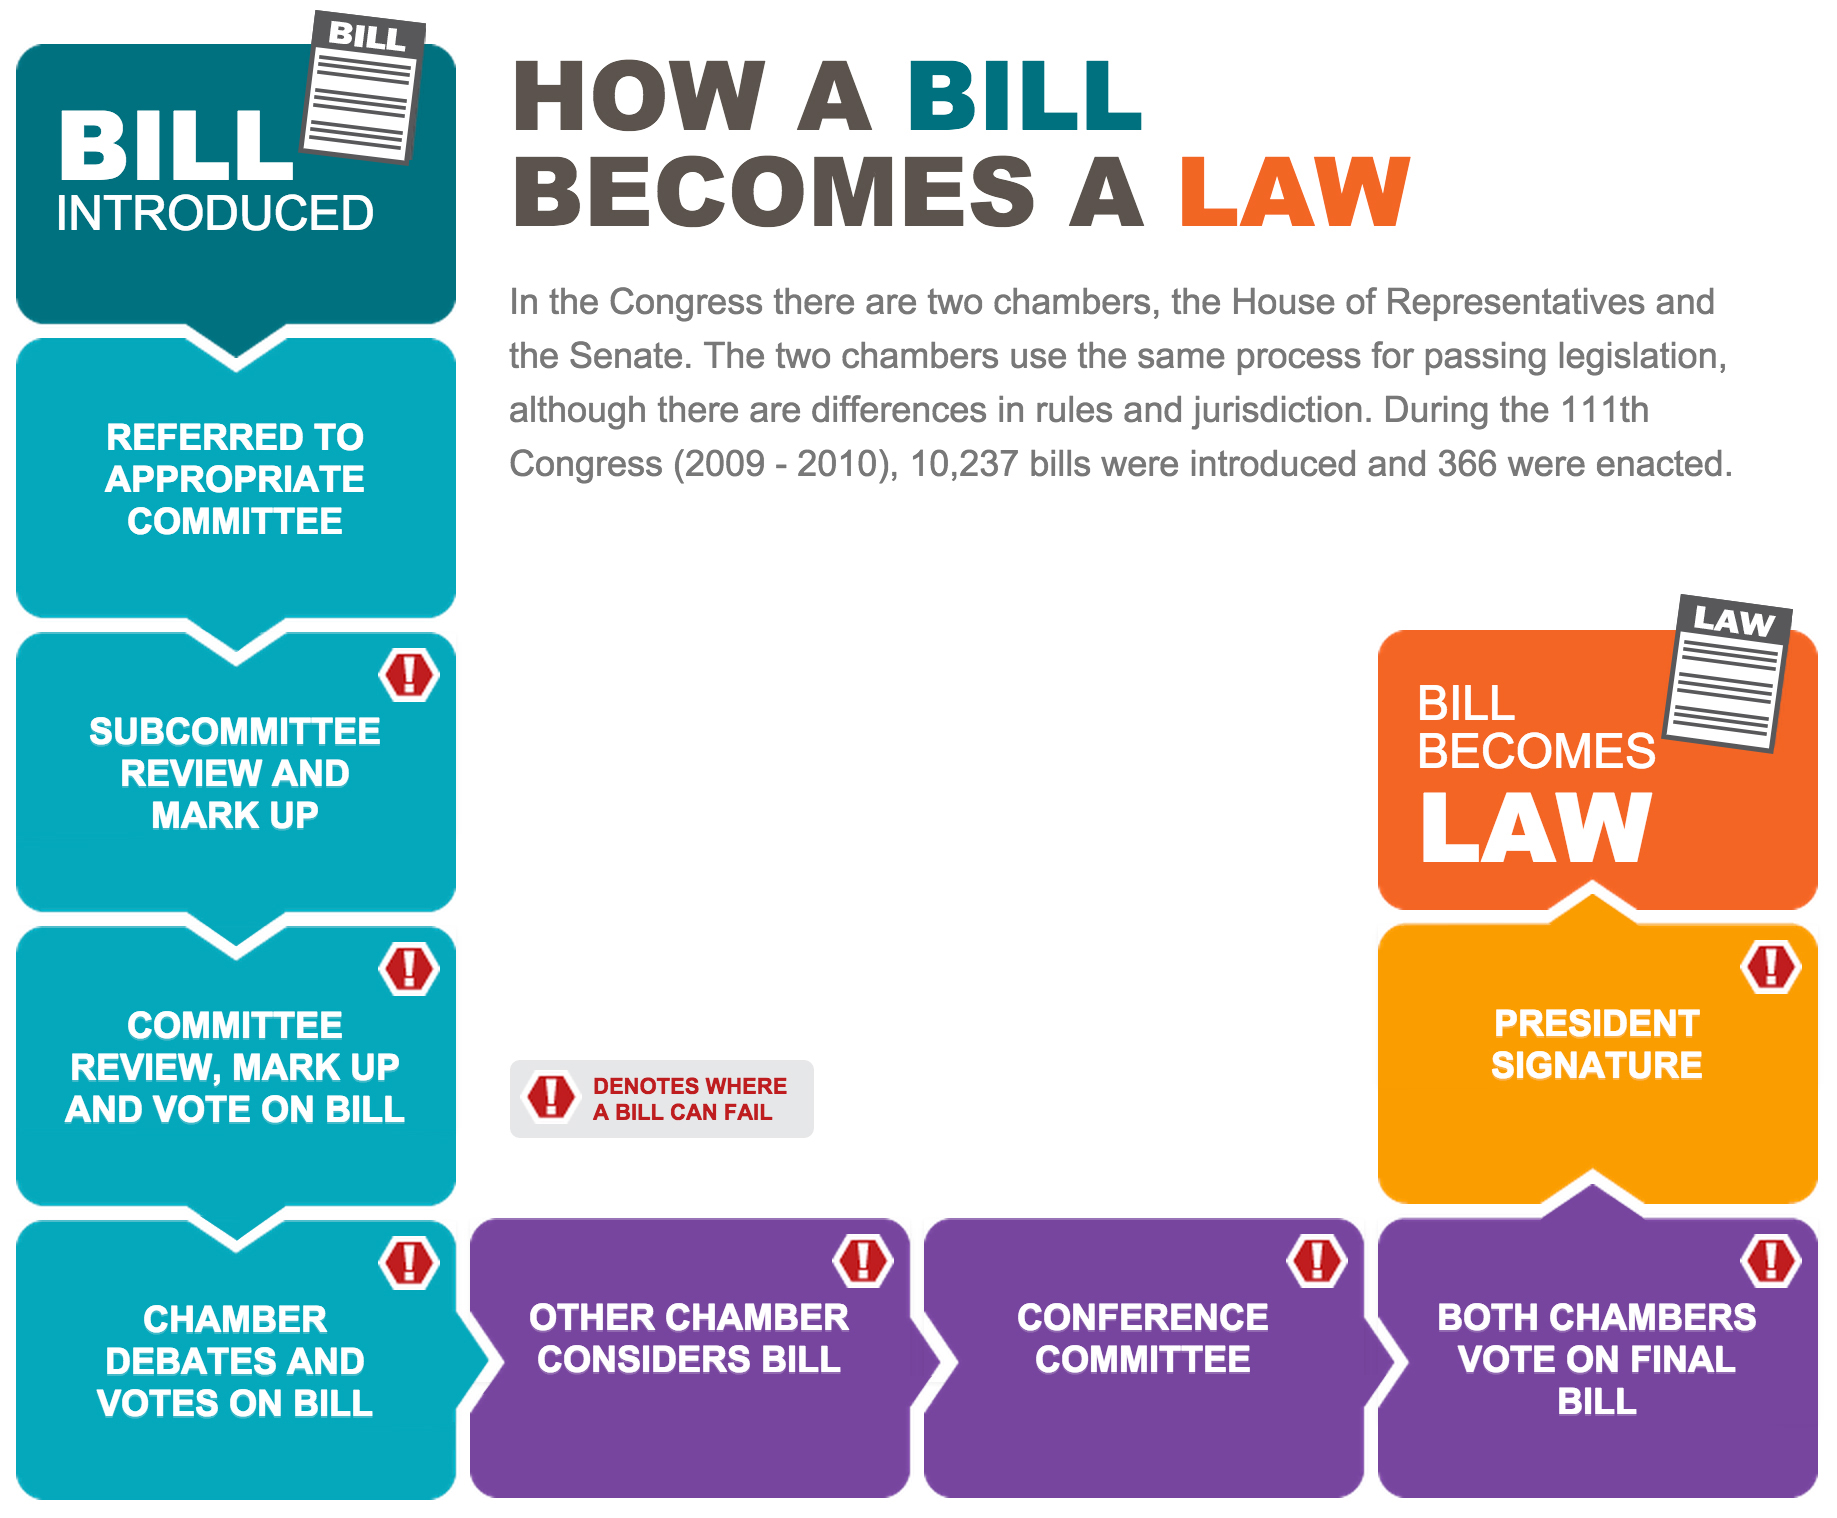 How a Bill Becomes a Law infographic